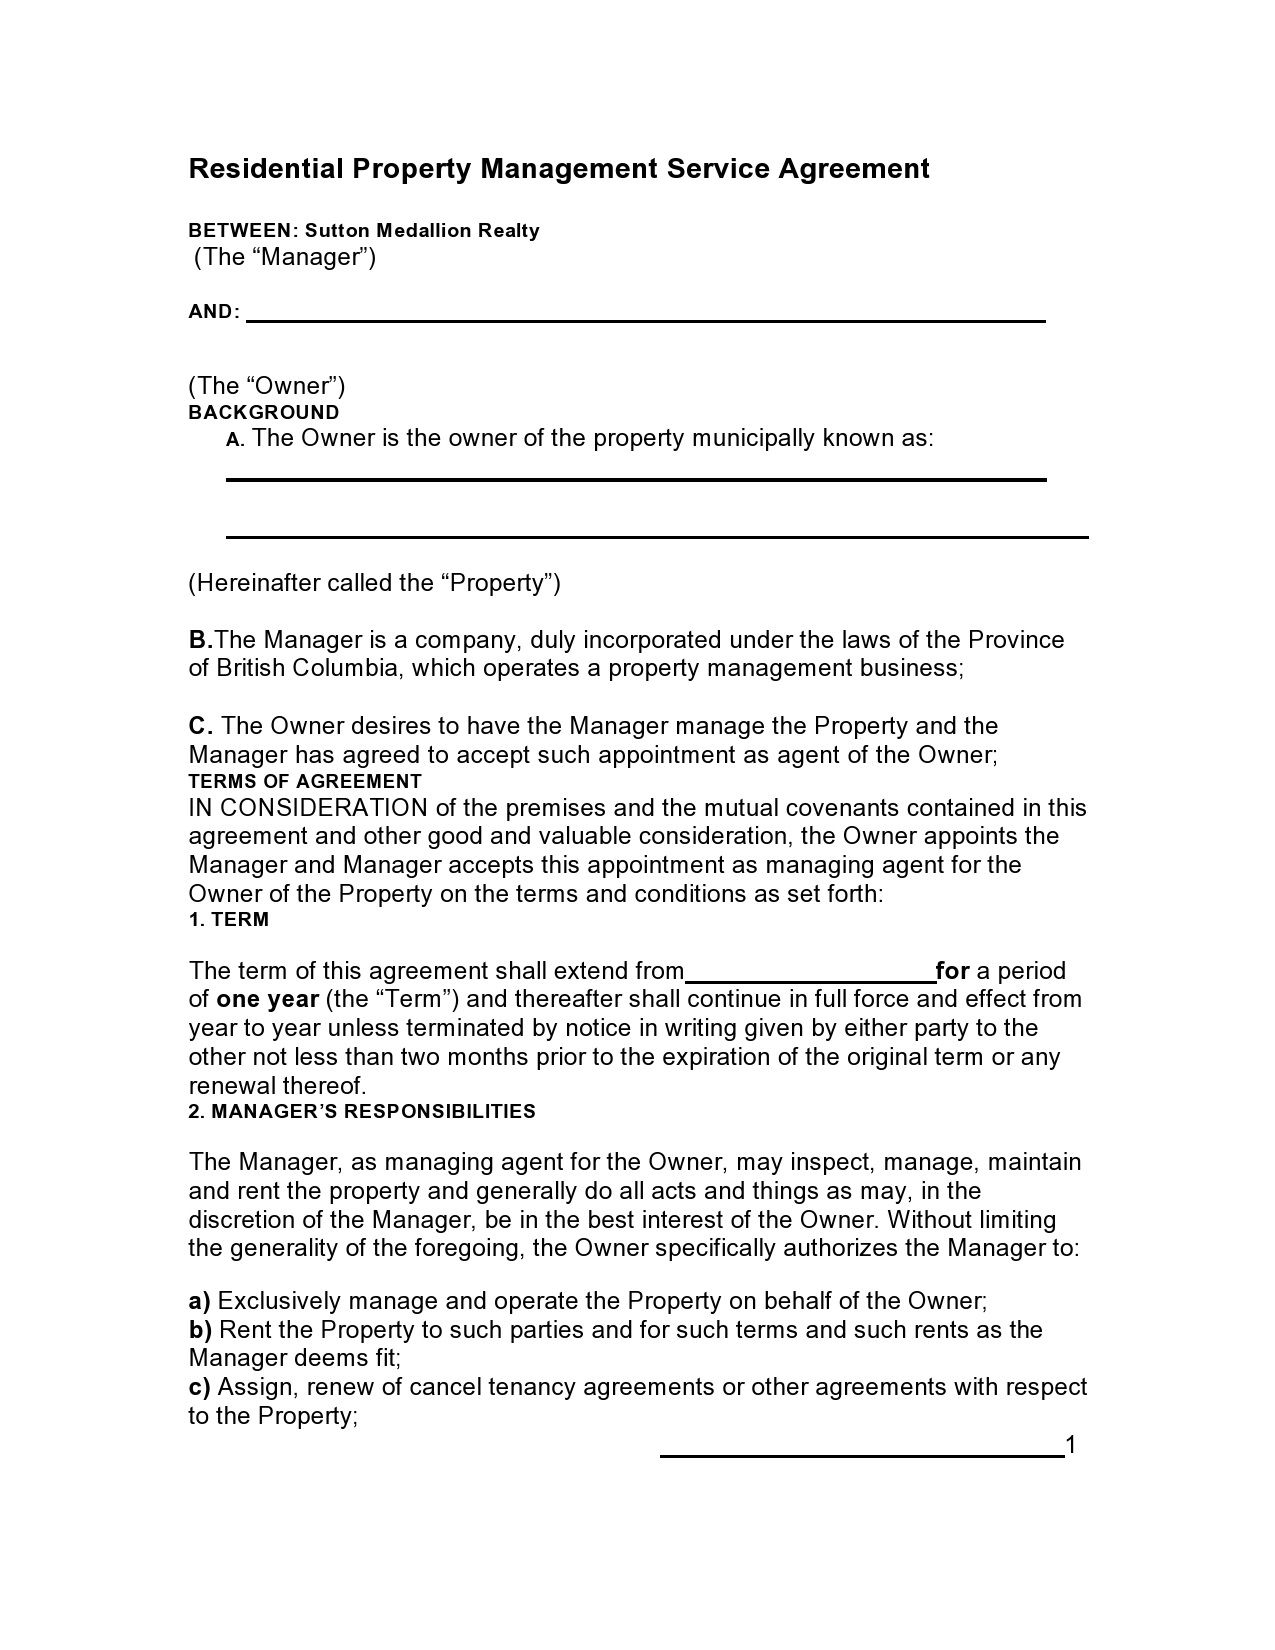 007 Fantastic Commercial Property Management Agreement Template Uk High Resolution Full